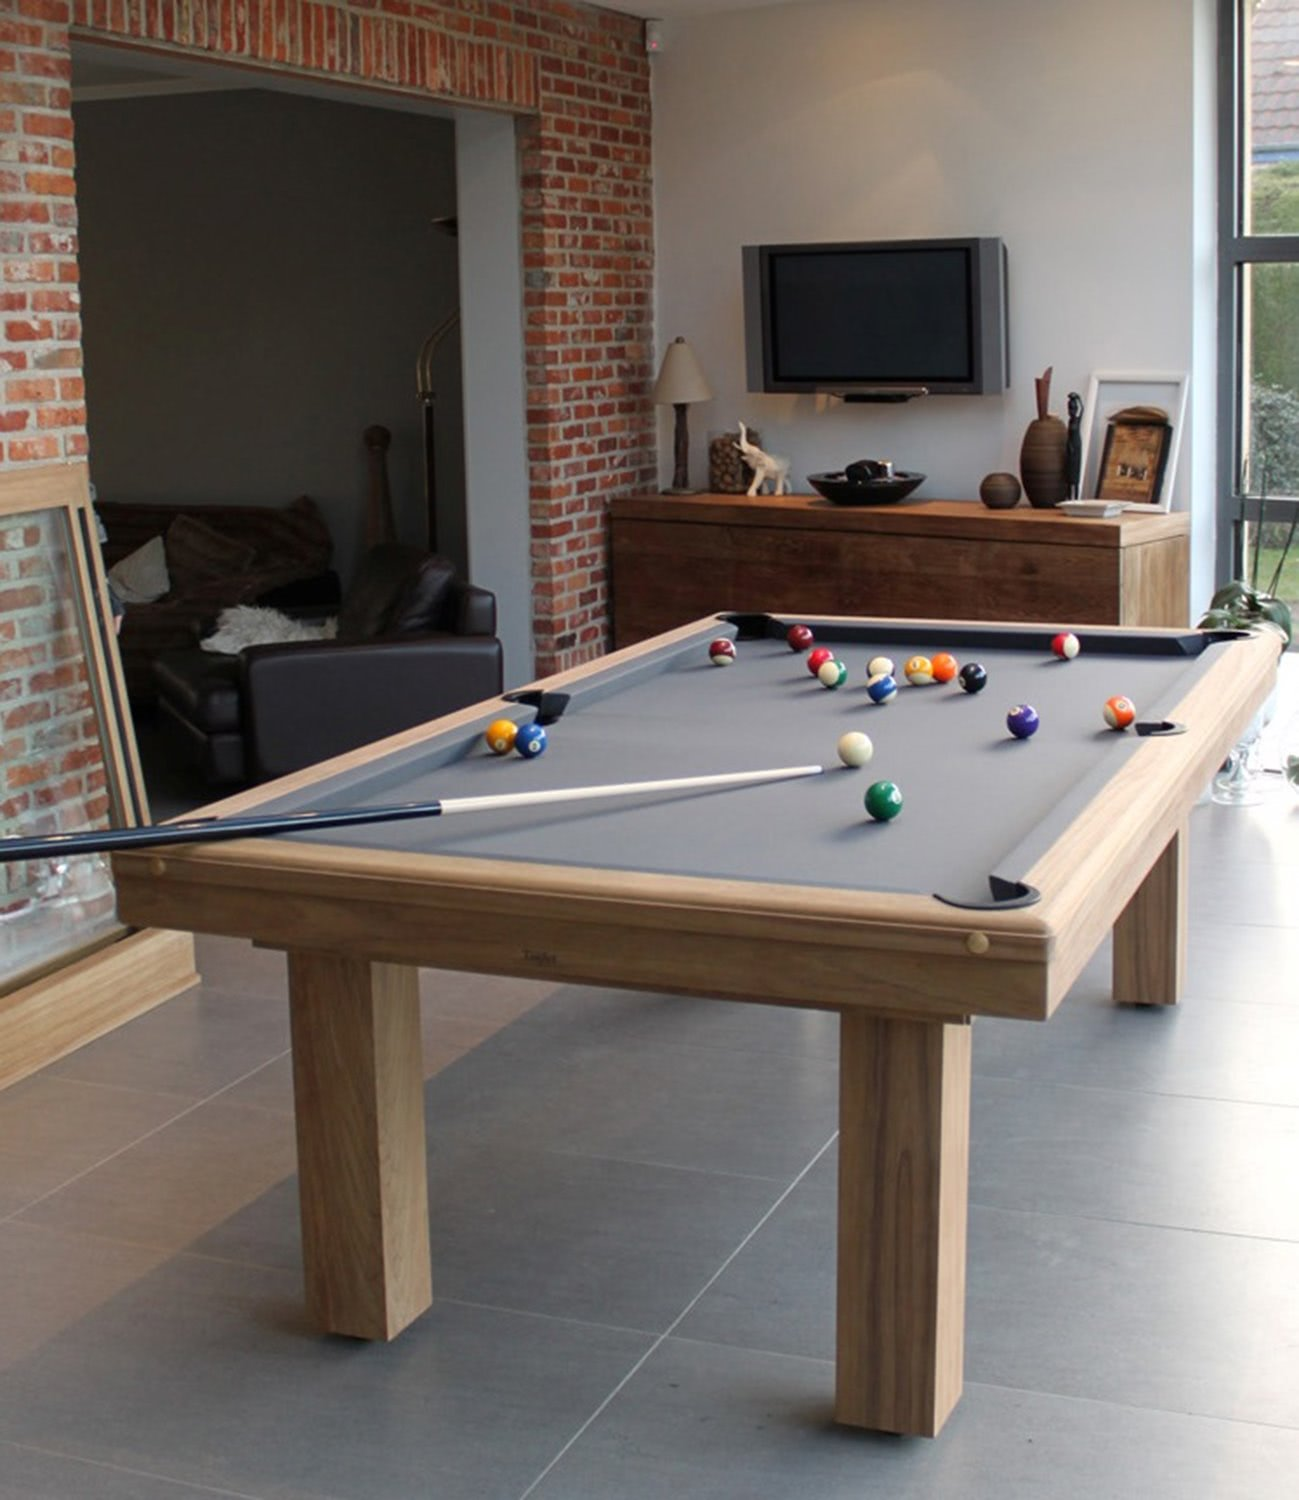 Billard Toulet Outdoor Teck Pool Table 7 ft 8 ft 9 ft